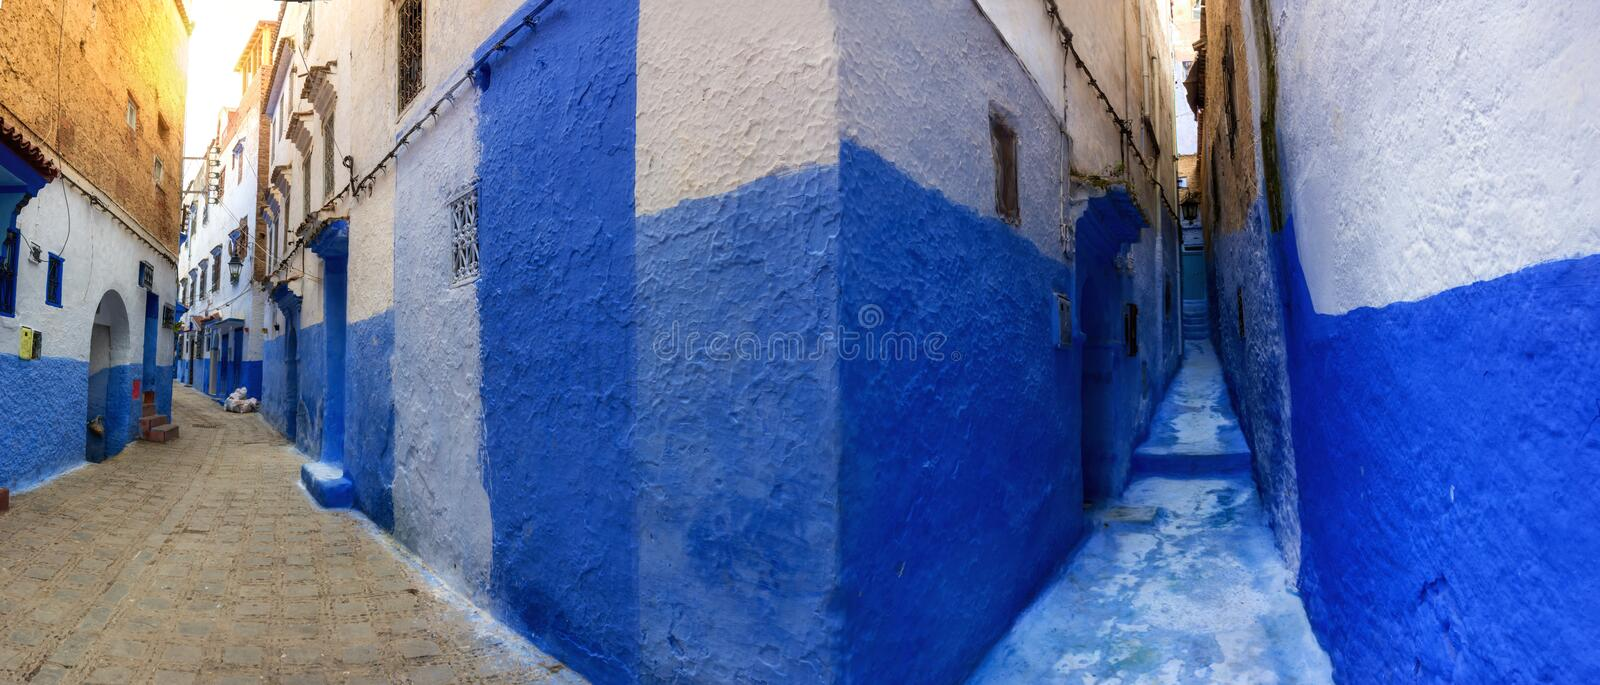 Panoramic picture of Chefchaouen`s medina, Morocco. Photomerge of a cozy street in the center of chefchaouen, Morocco stock images